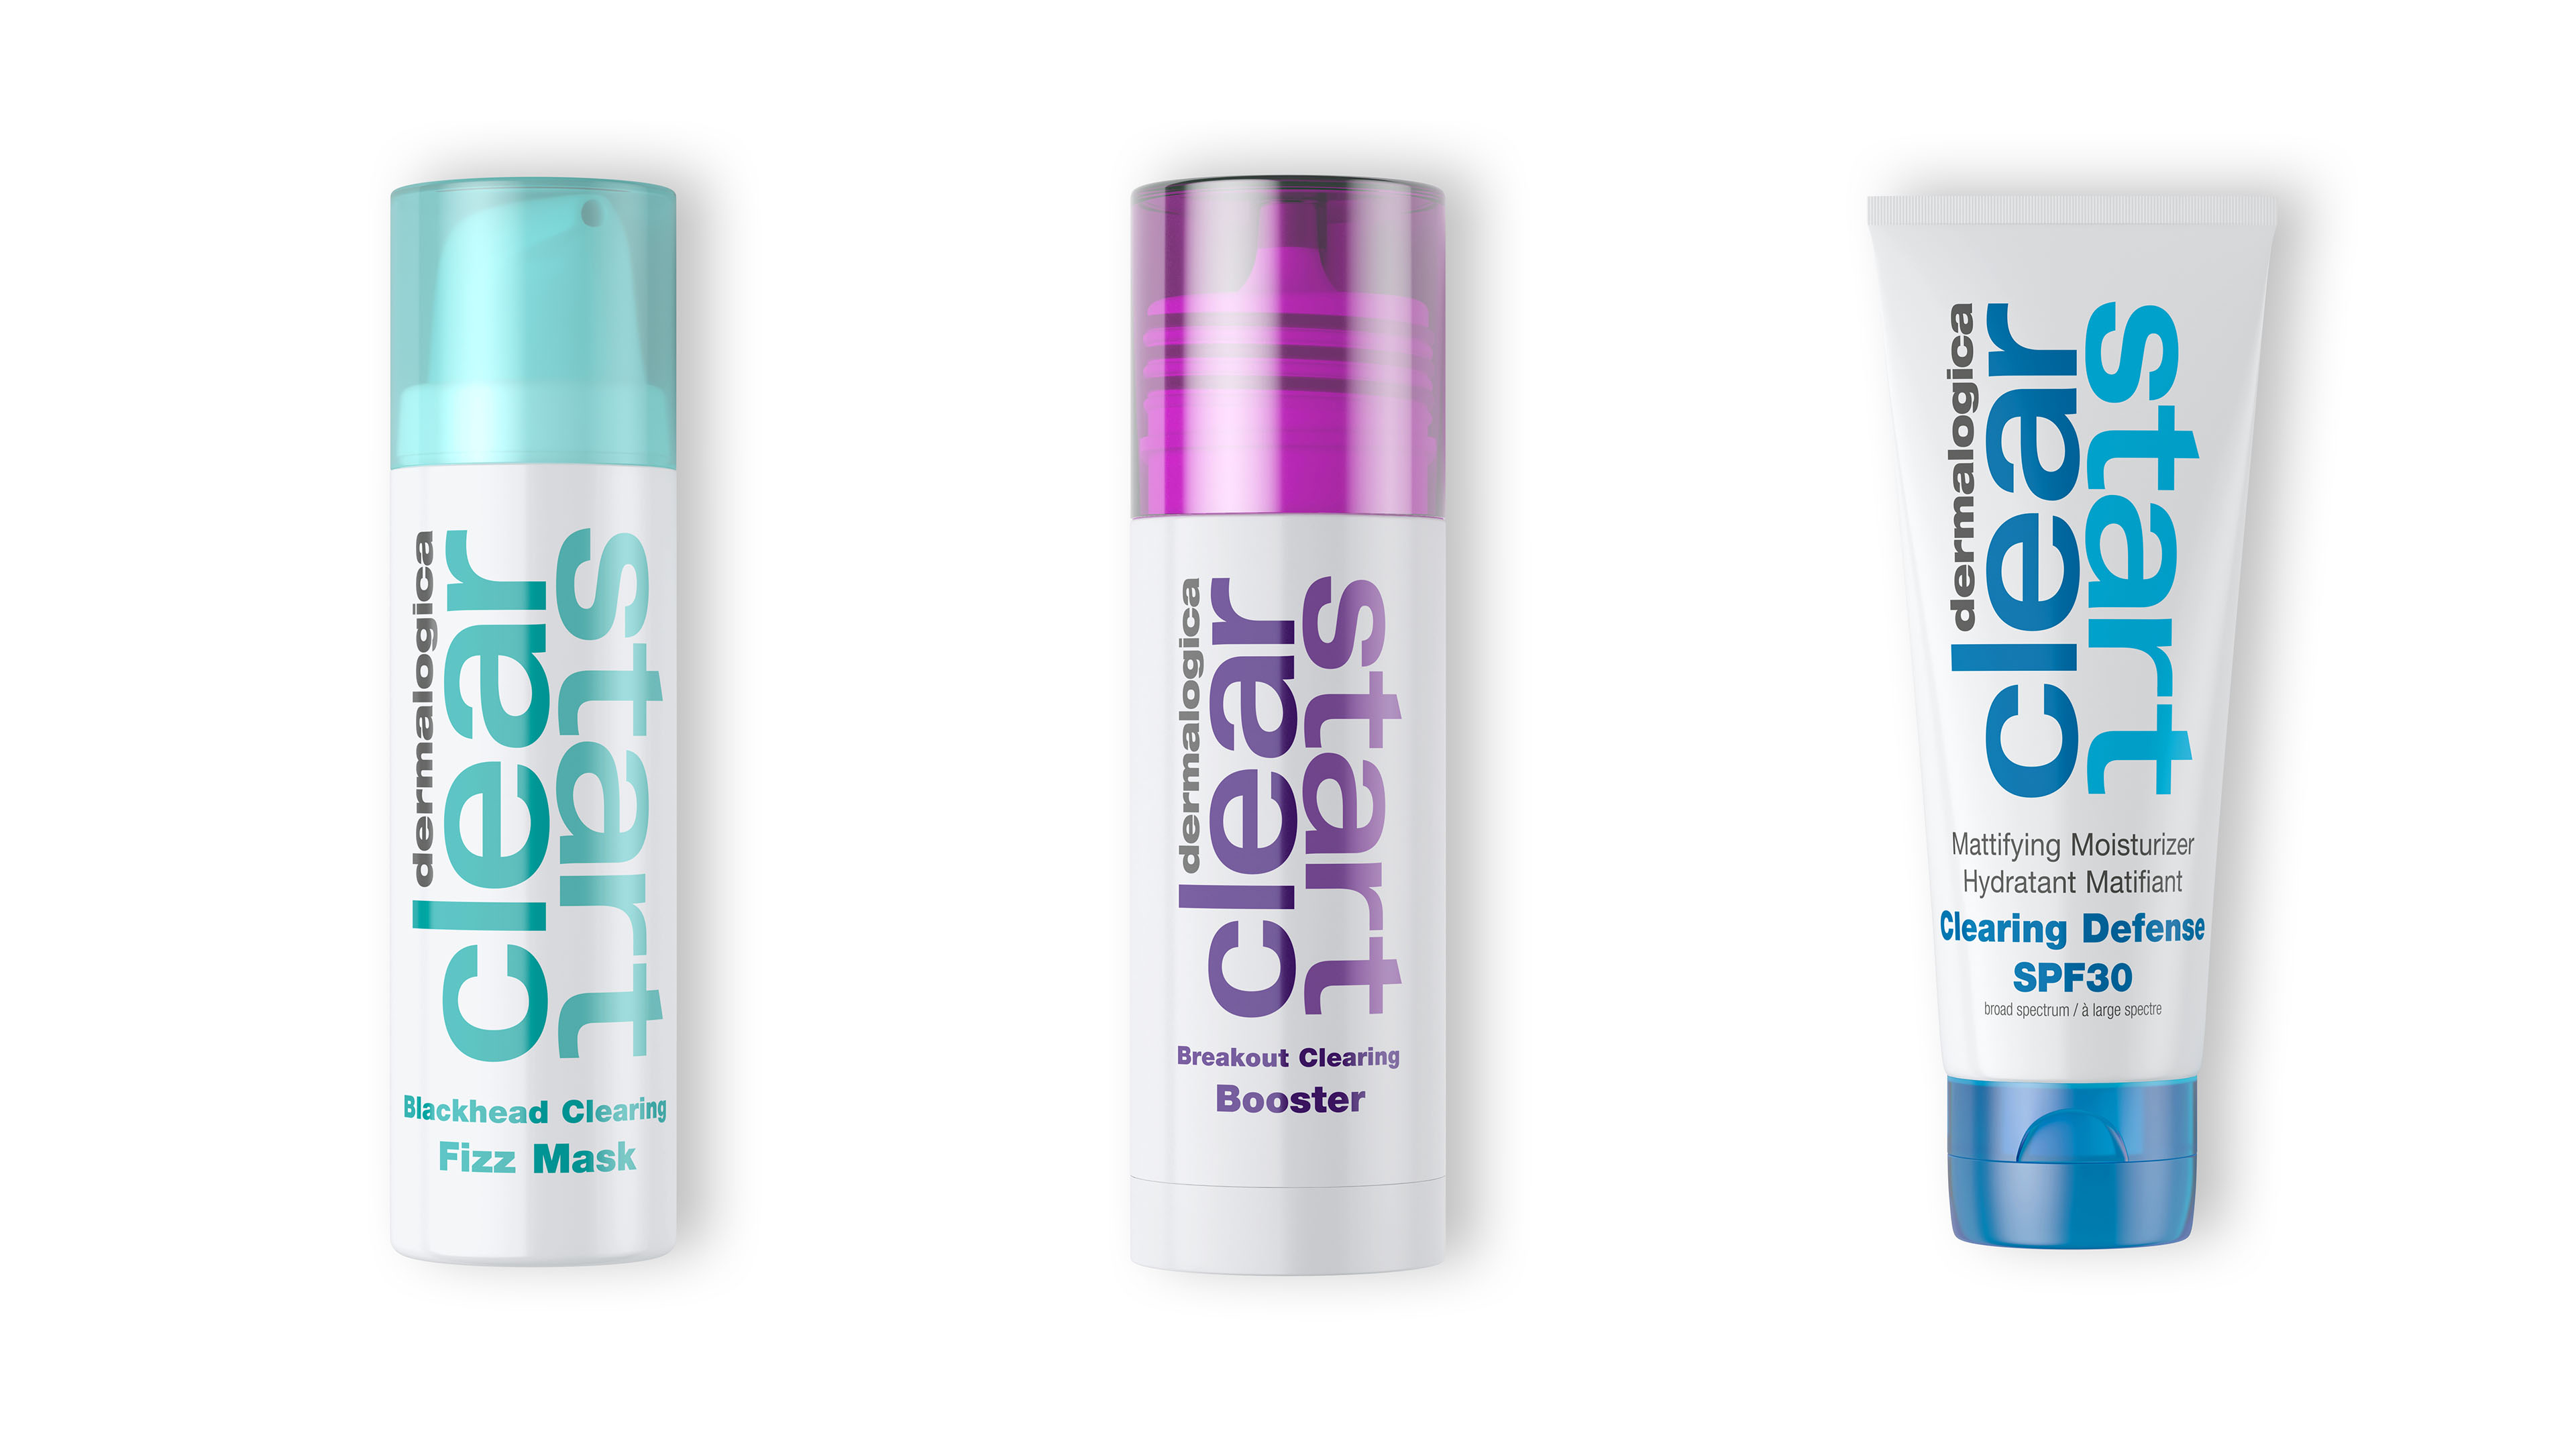 Dermalogica Fizz Mask, Booster, and Clearing Defense product packages